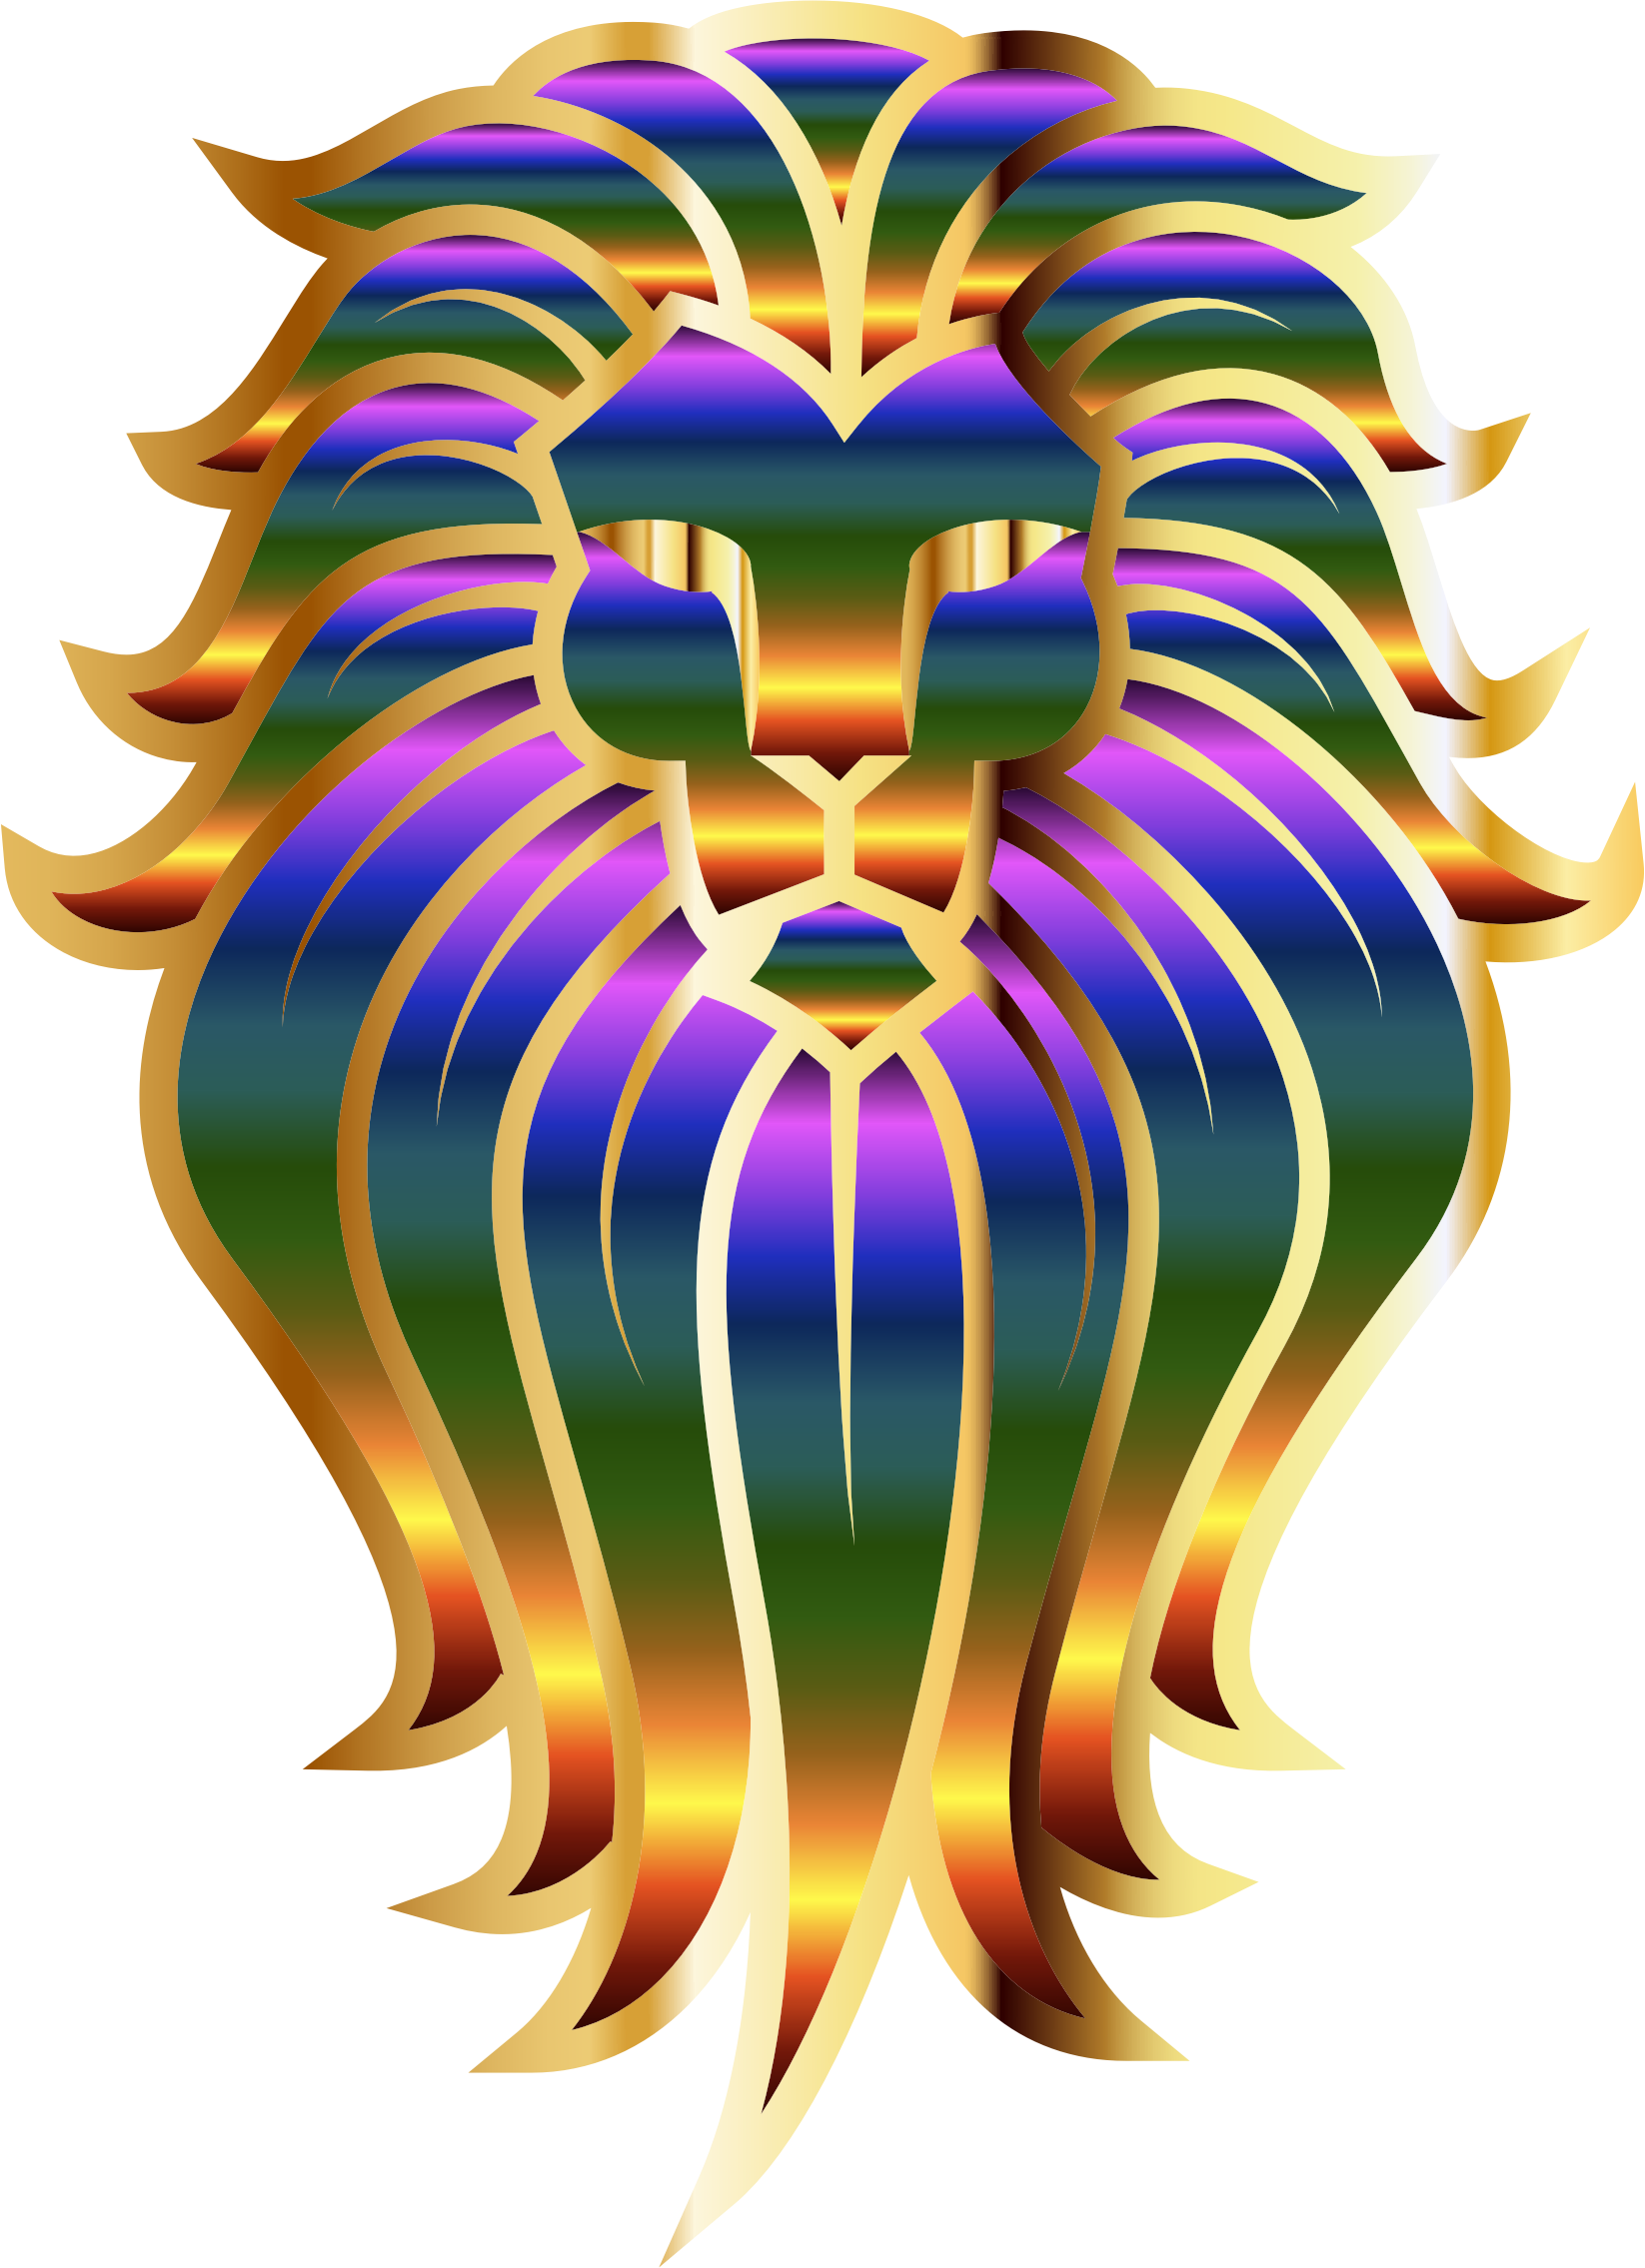 Chromatic Lion Face Tattoo 2 No Background by GDJ